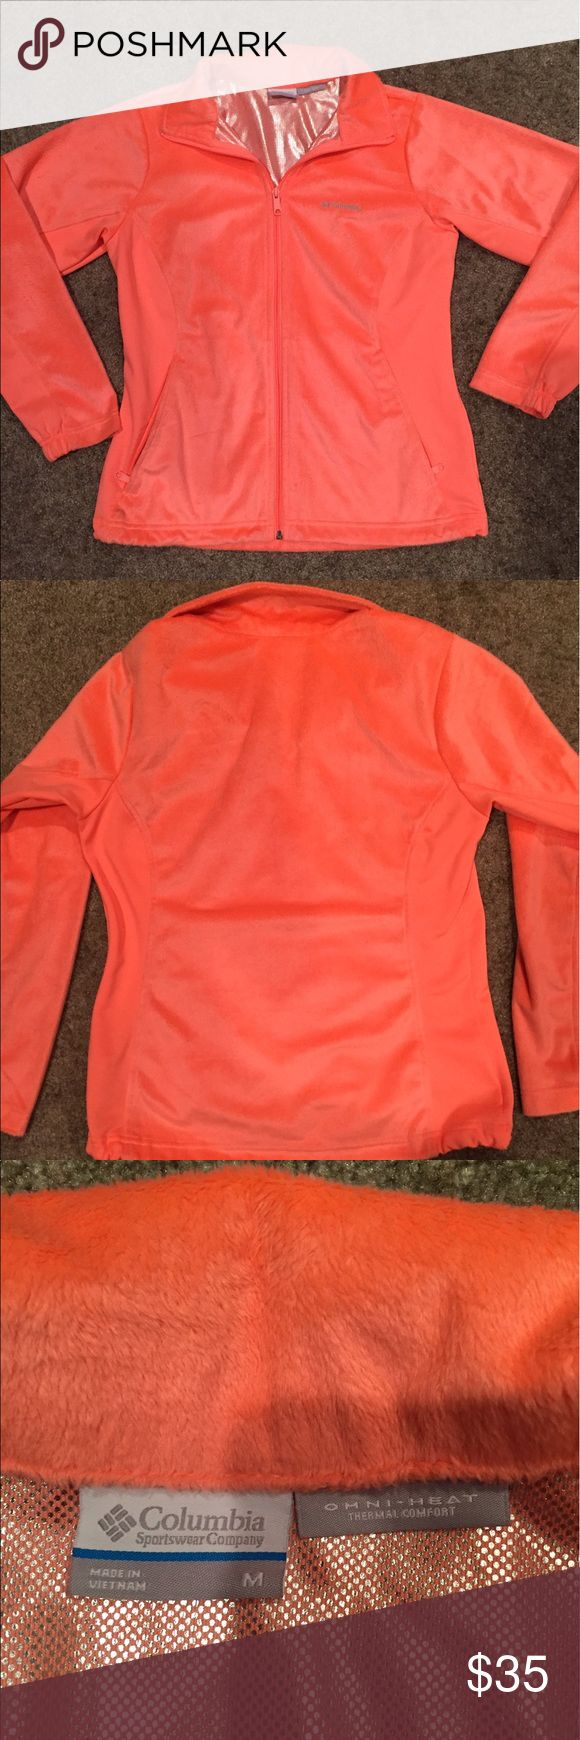 New Columbia Omni-Heat jacket Worn once only, not a good color on me. Thermal comfort & very soft. Definitely keeps you cozy. Columbia Jackets & Coats